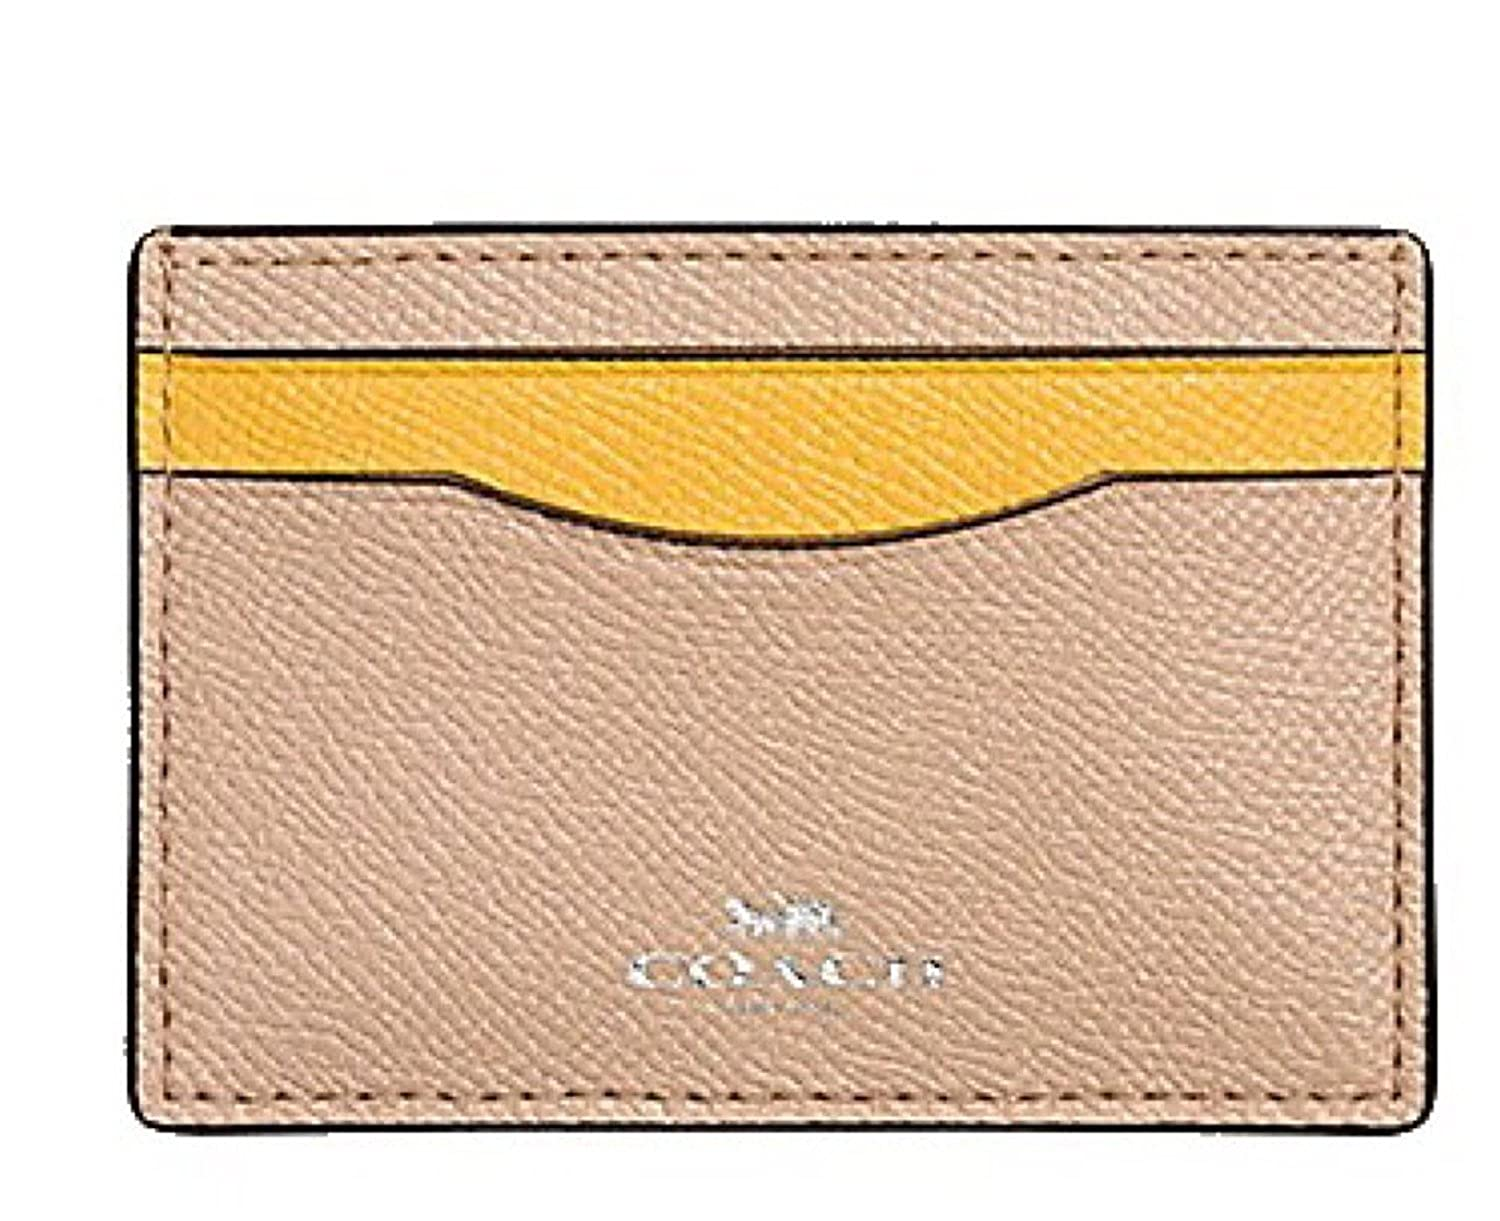 Coach Colorblock Crossgrain Leather Card Case F86927 Beechwood Banana 00_PFTAIJHW_02